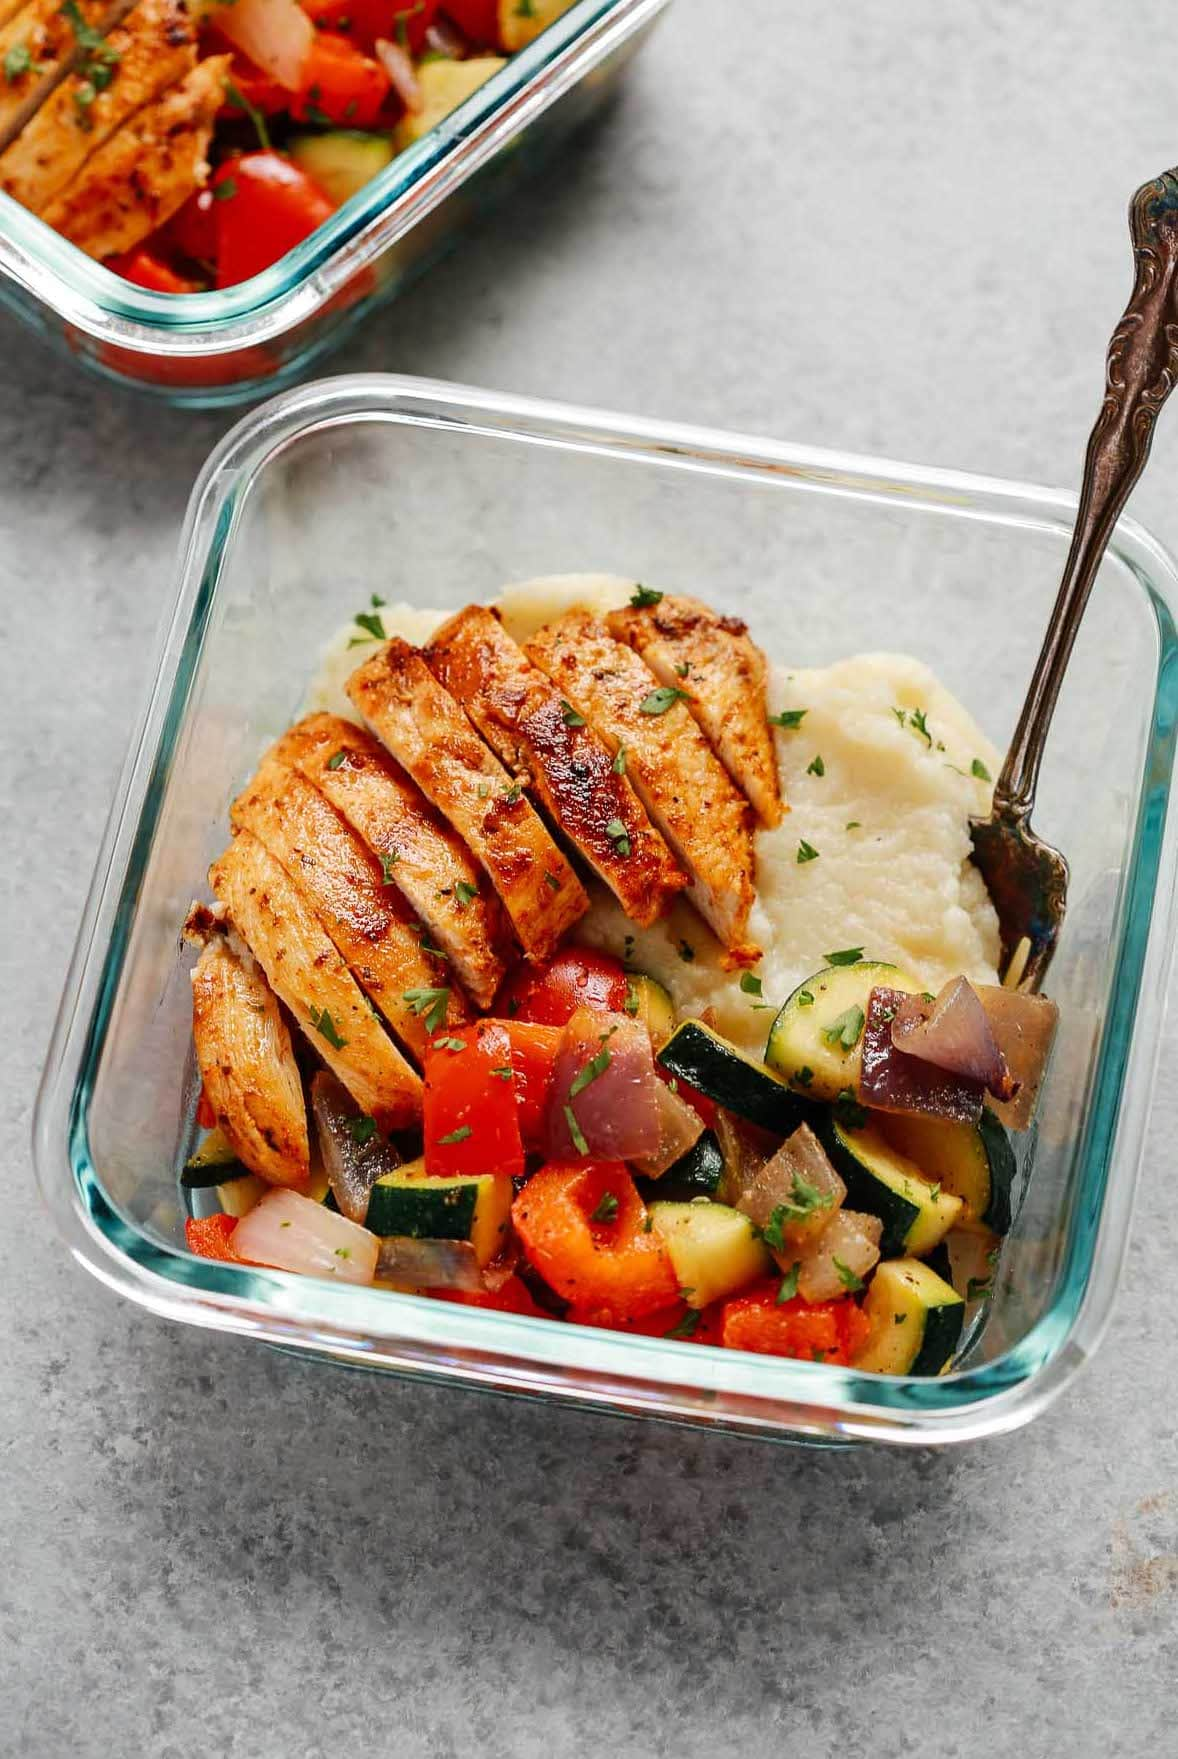 sliced baked chicken breast, cooked mixed vegetables and cauliflower mashed potatoes in square glass meal prep container